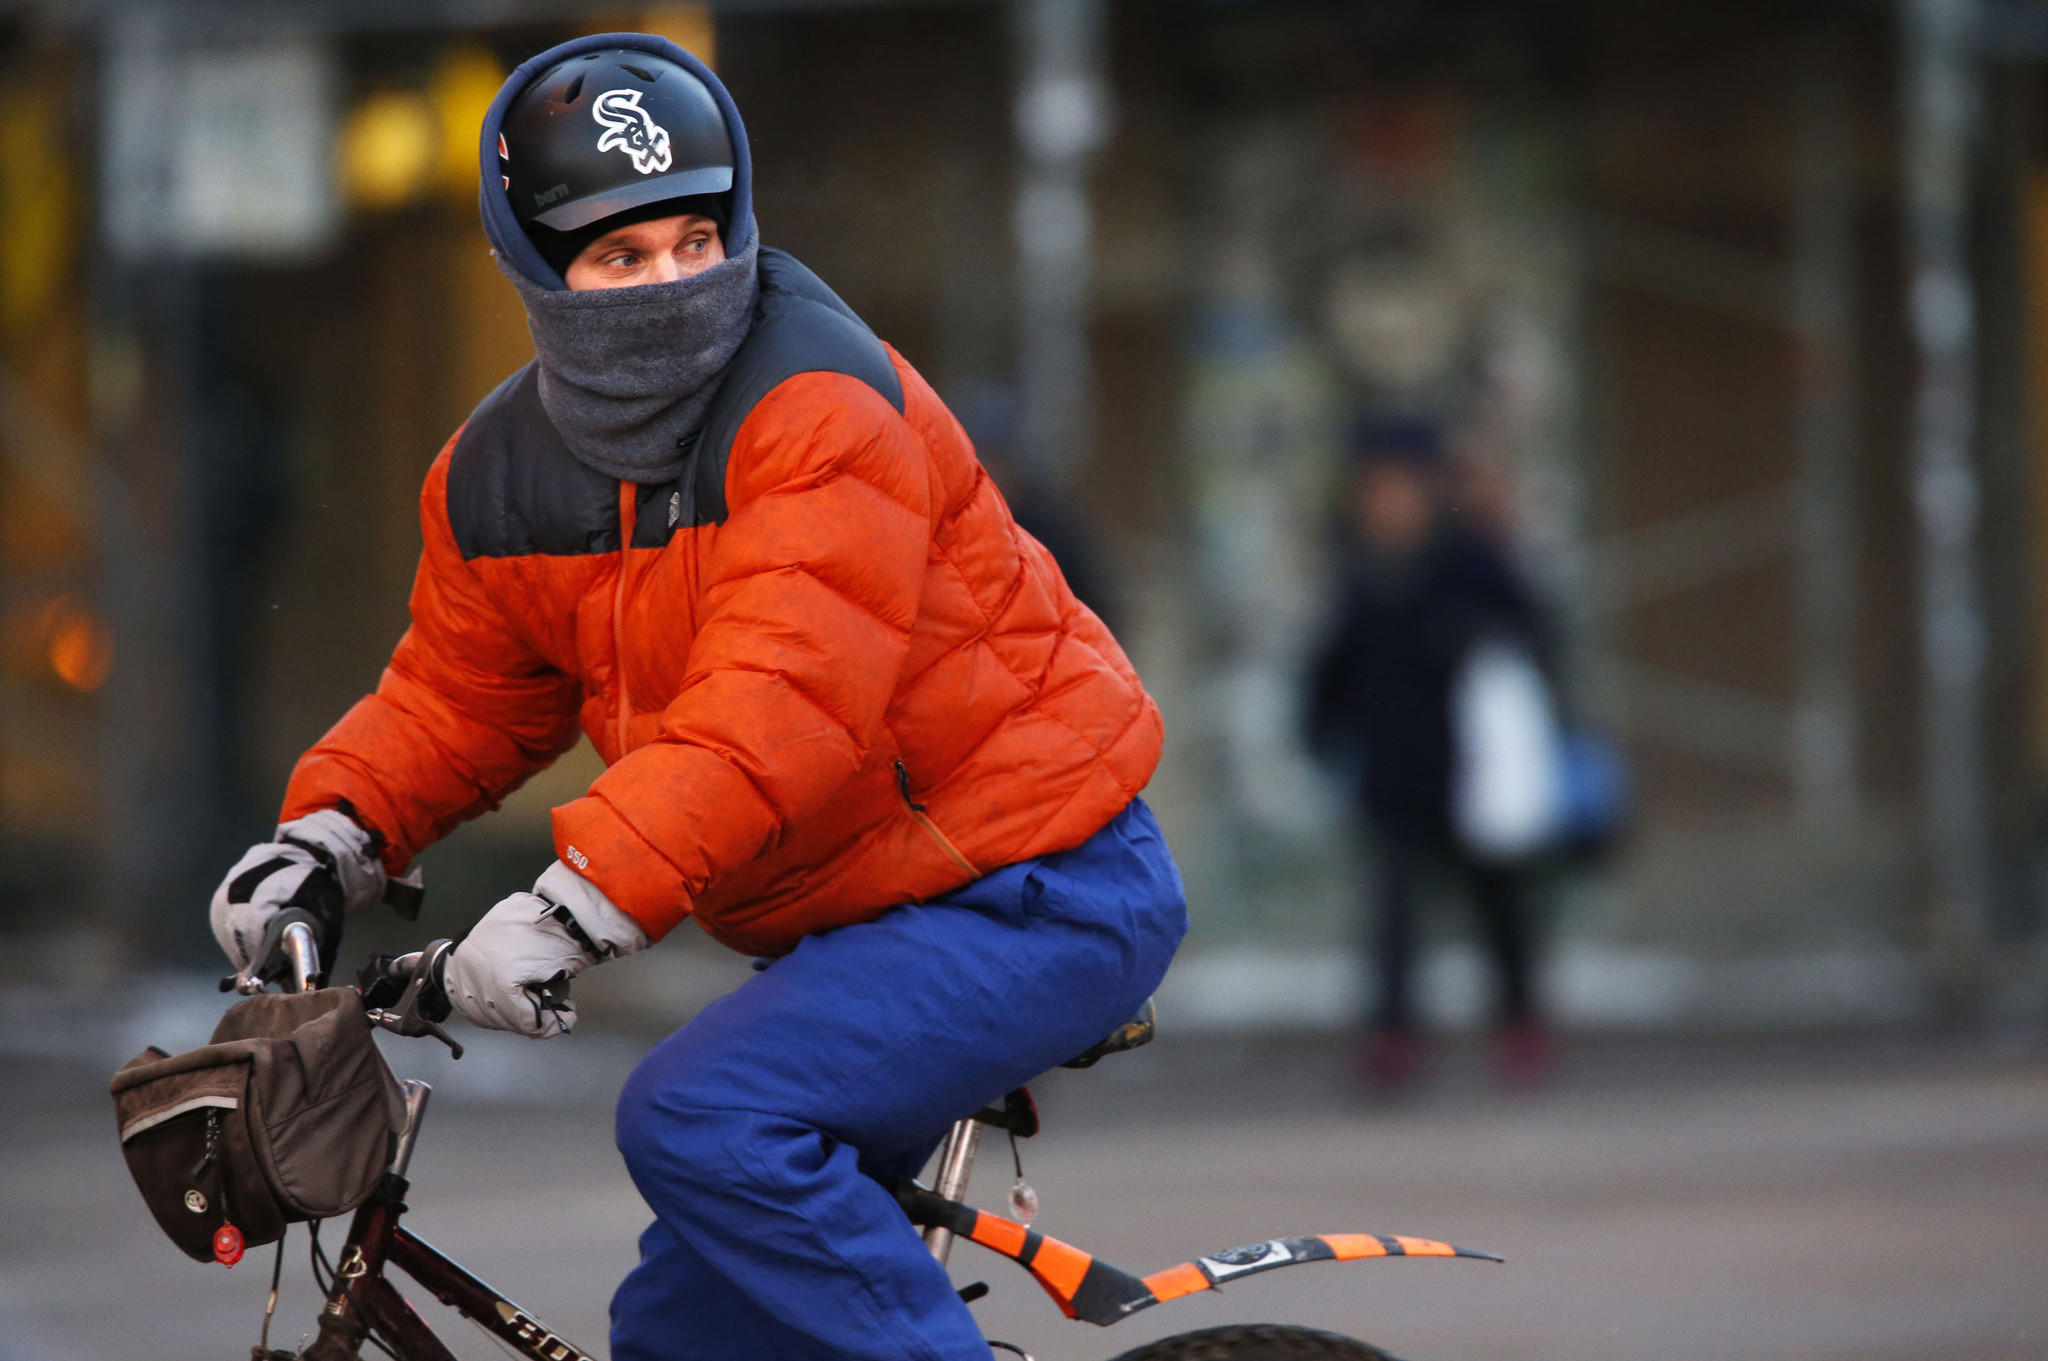 A bicyclist rides southbound in the brutal cold on North Milwaukee Avenue at West North Avenue in Chicago's Wicker Park neighborhood.